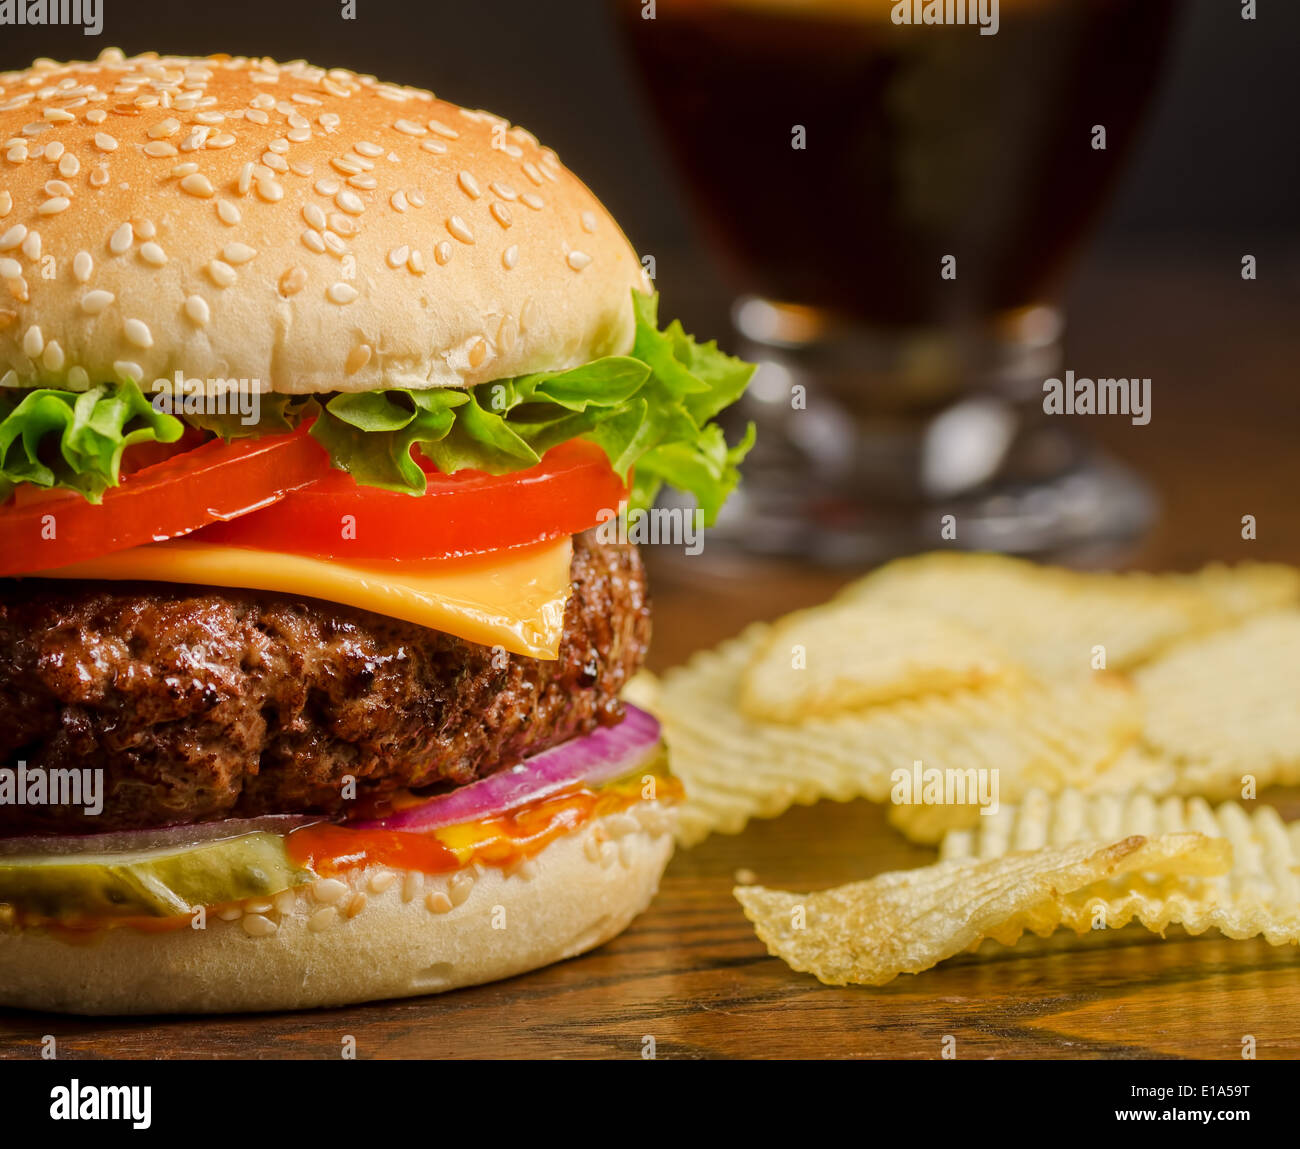 A deluxe cheeseburger with potato chips and cola. - Stock Image